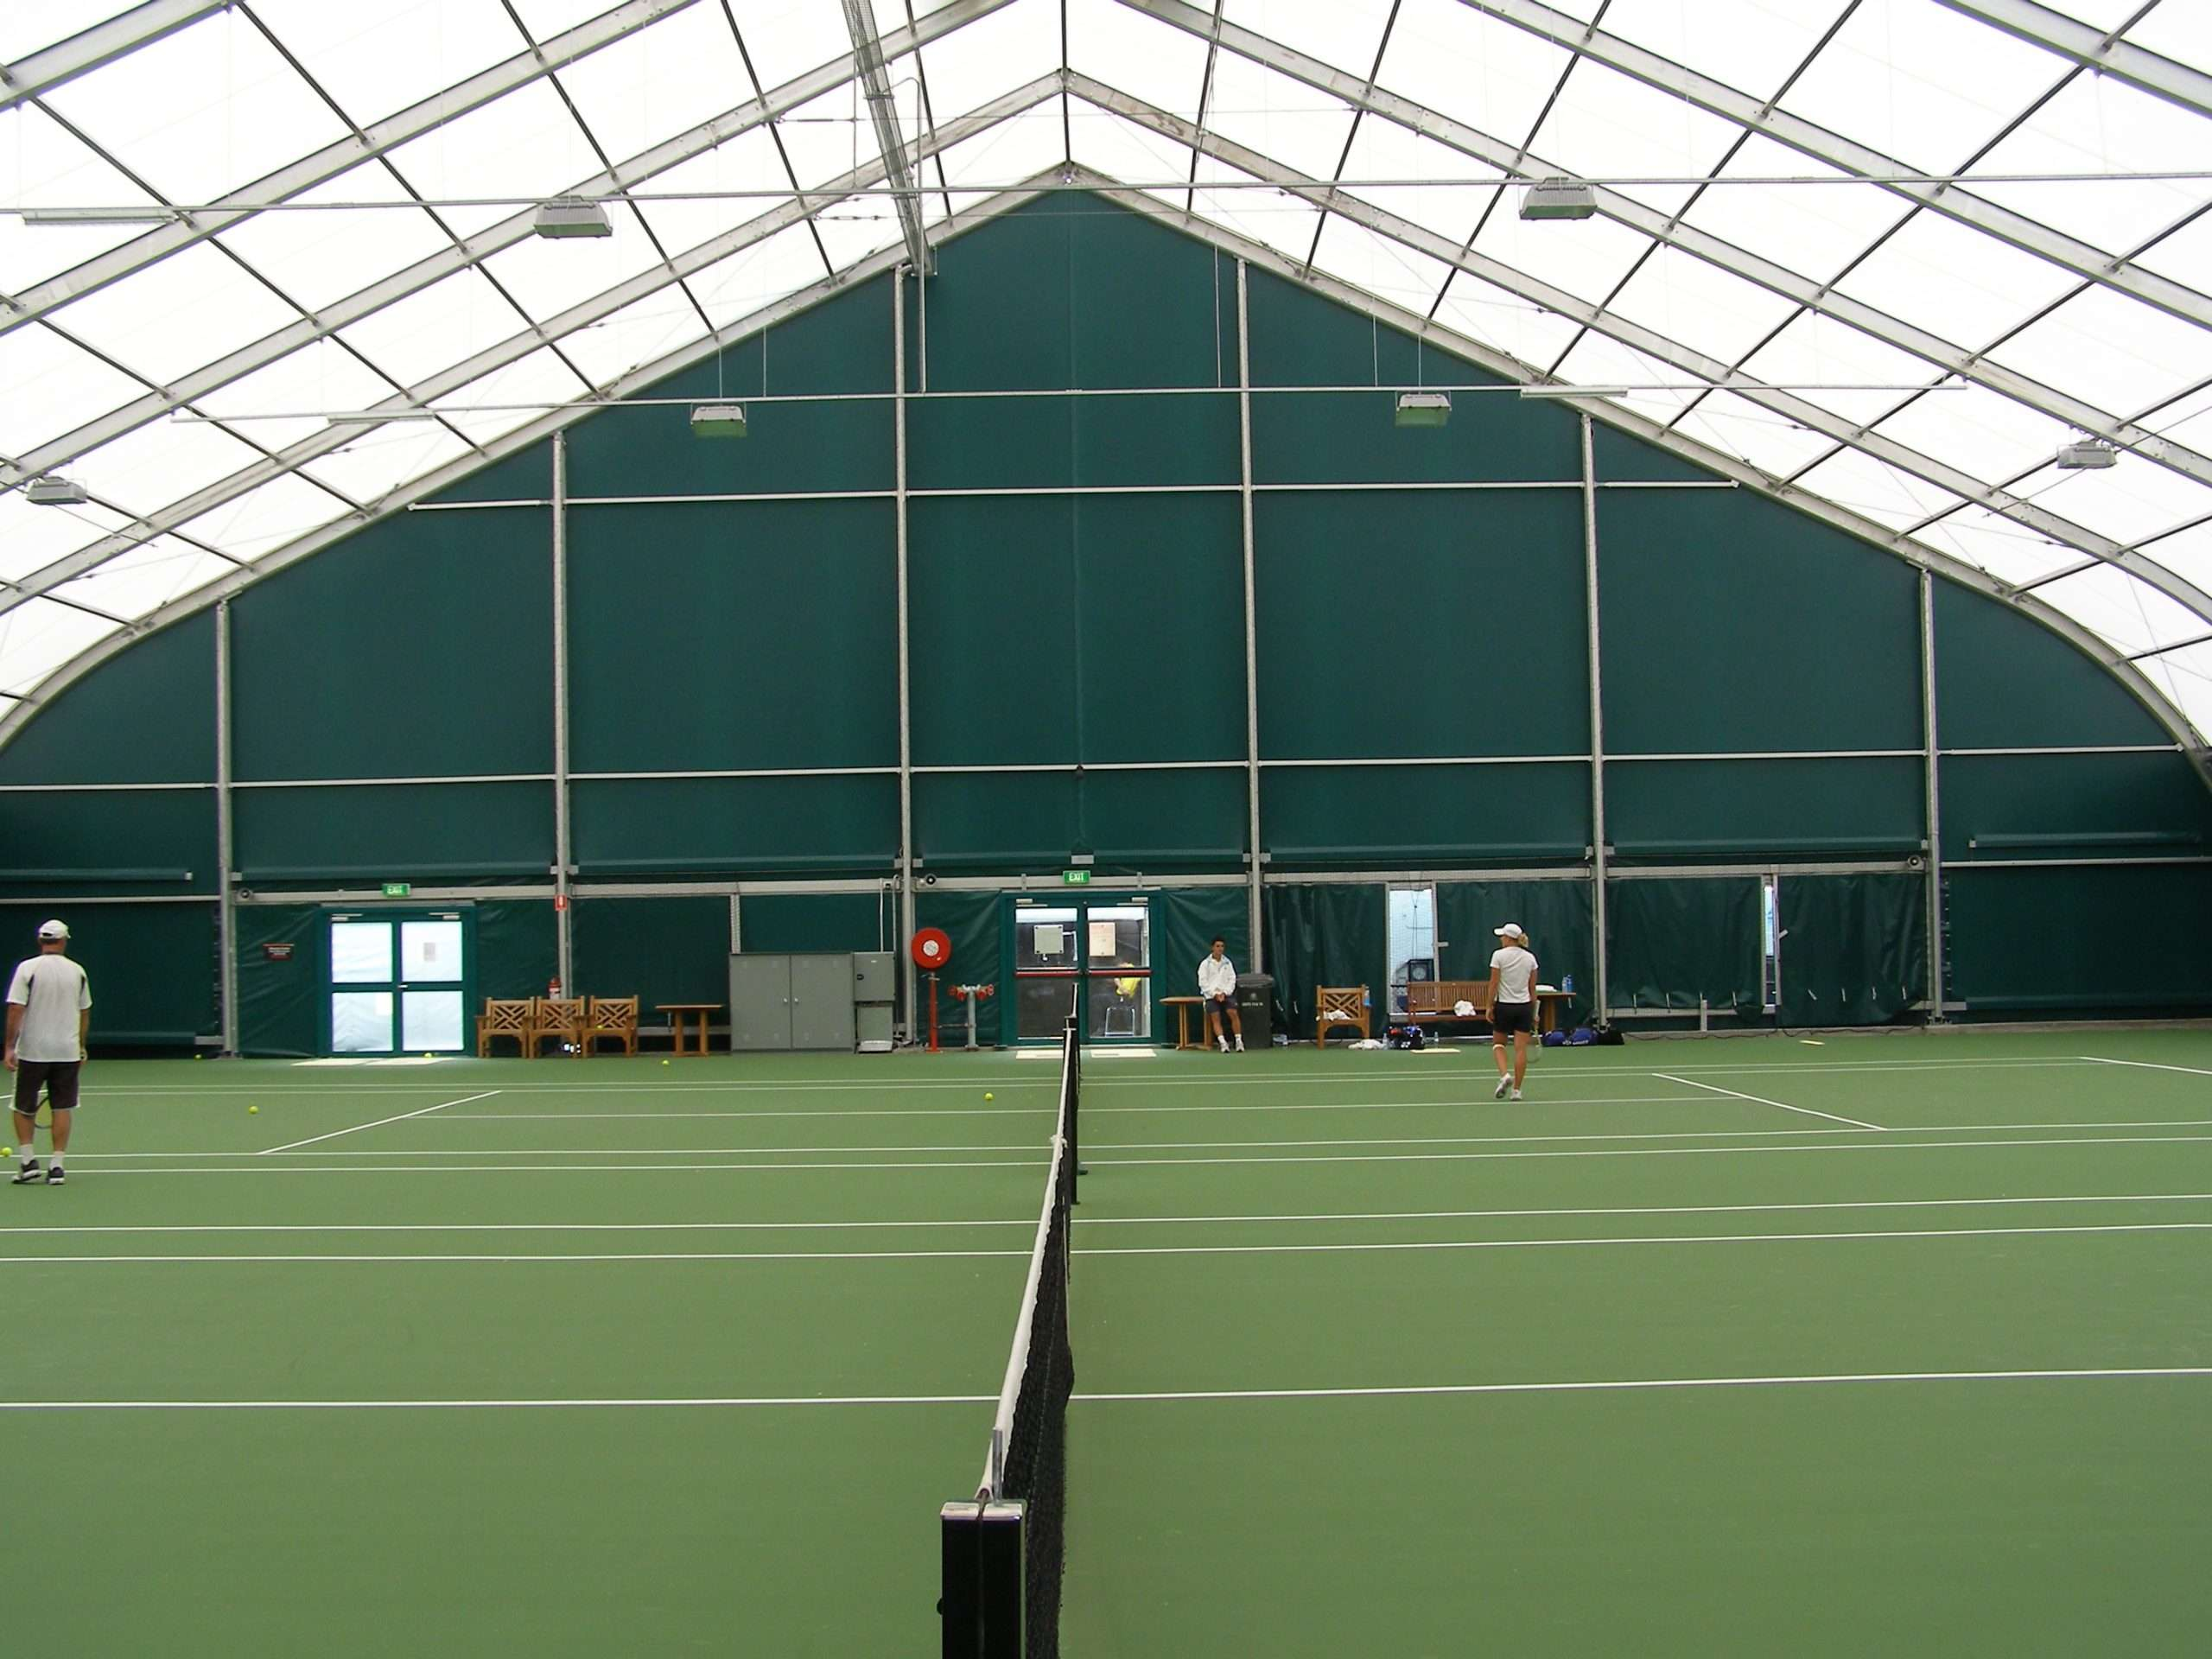 Bright and airy indoor tennis venue in an engineered fabric building showing tennis courts and high open ceiling